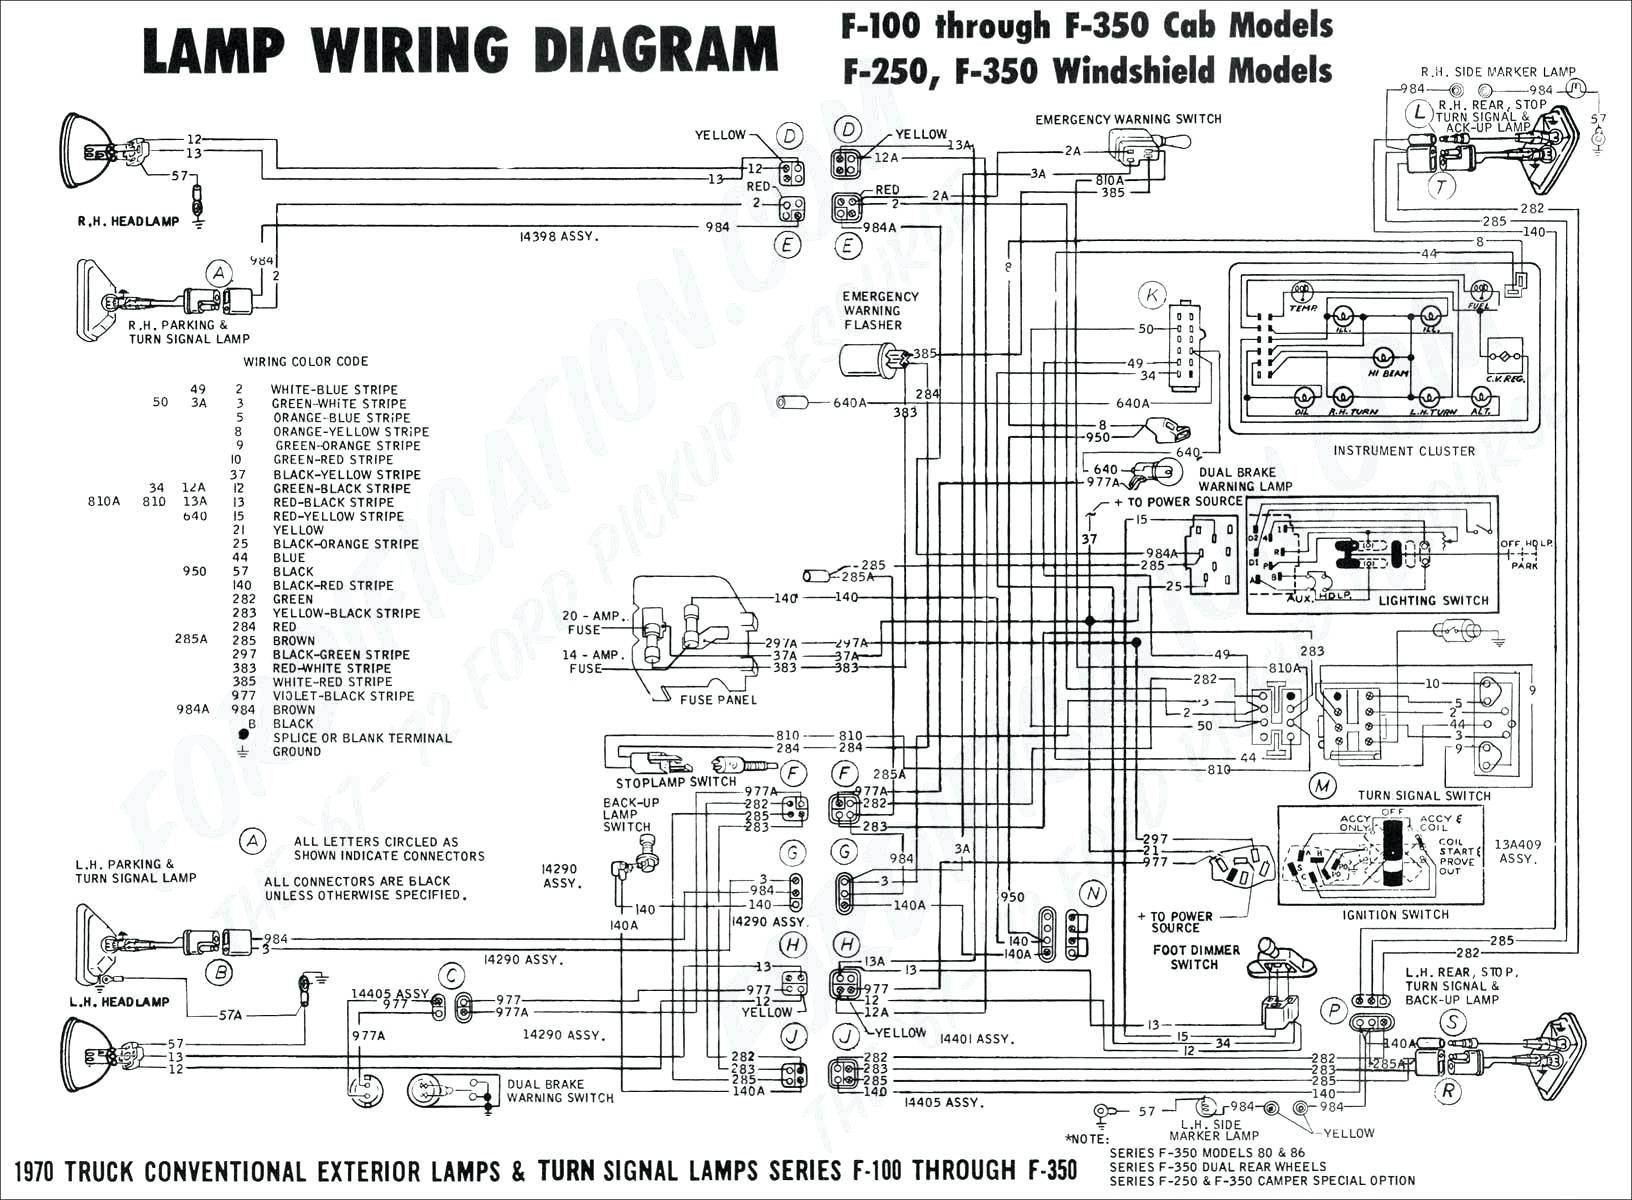 Diagram 1988 Dodge Ram 50 Wiring Diagram Full Version Hd Quality Wiring Diagram Lopp Diagram Kuteportal Fr